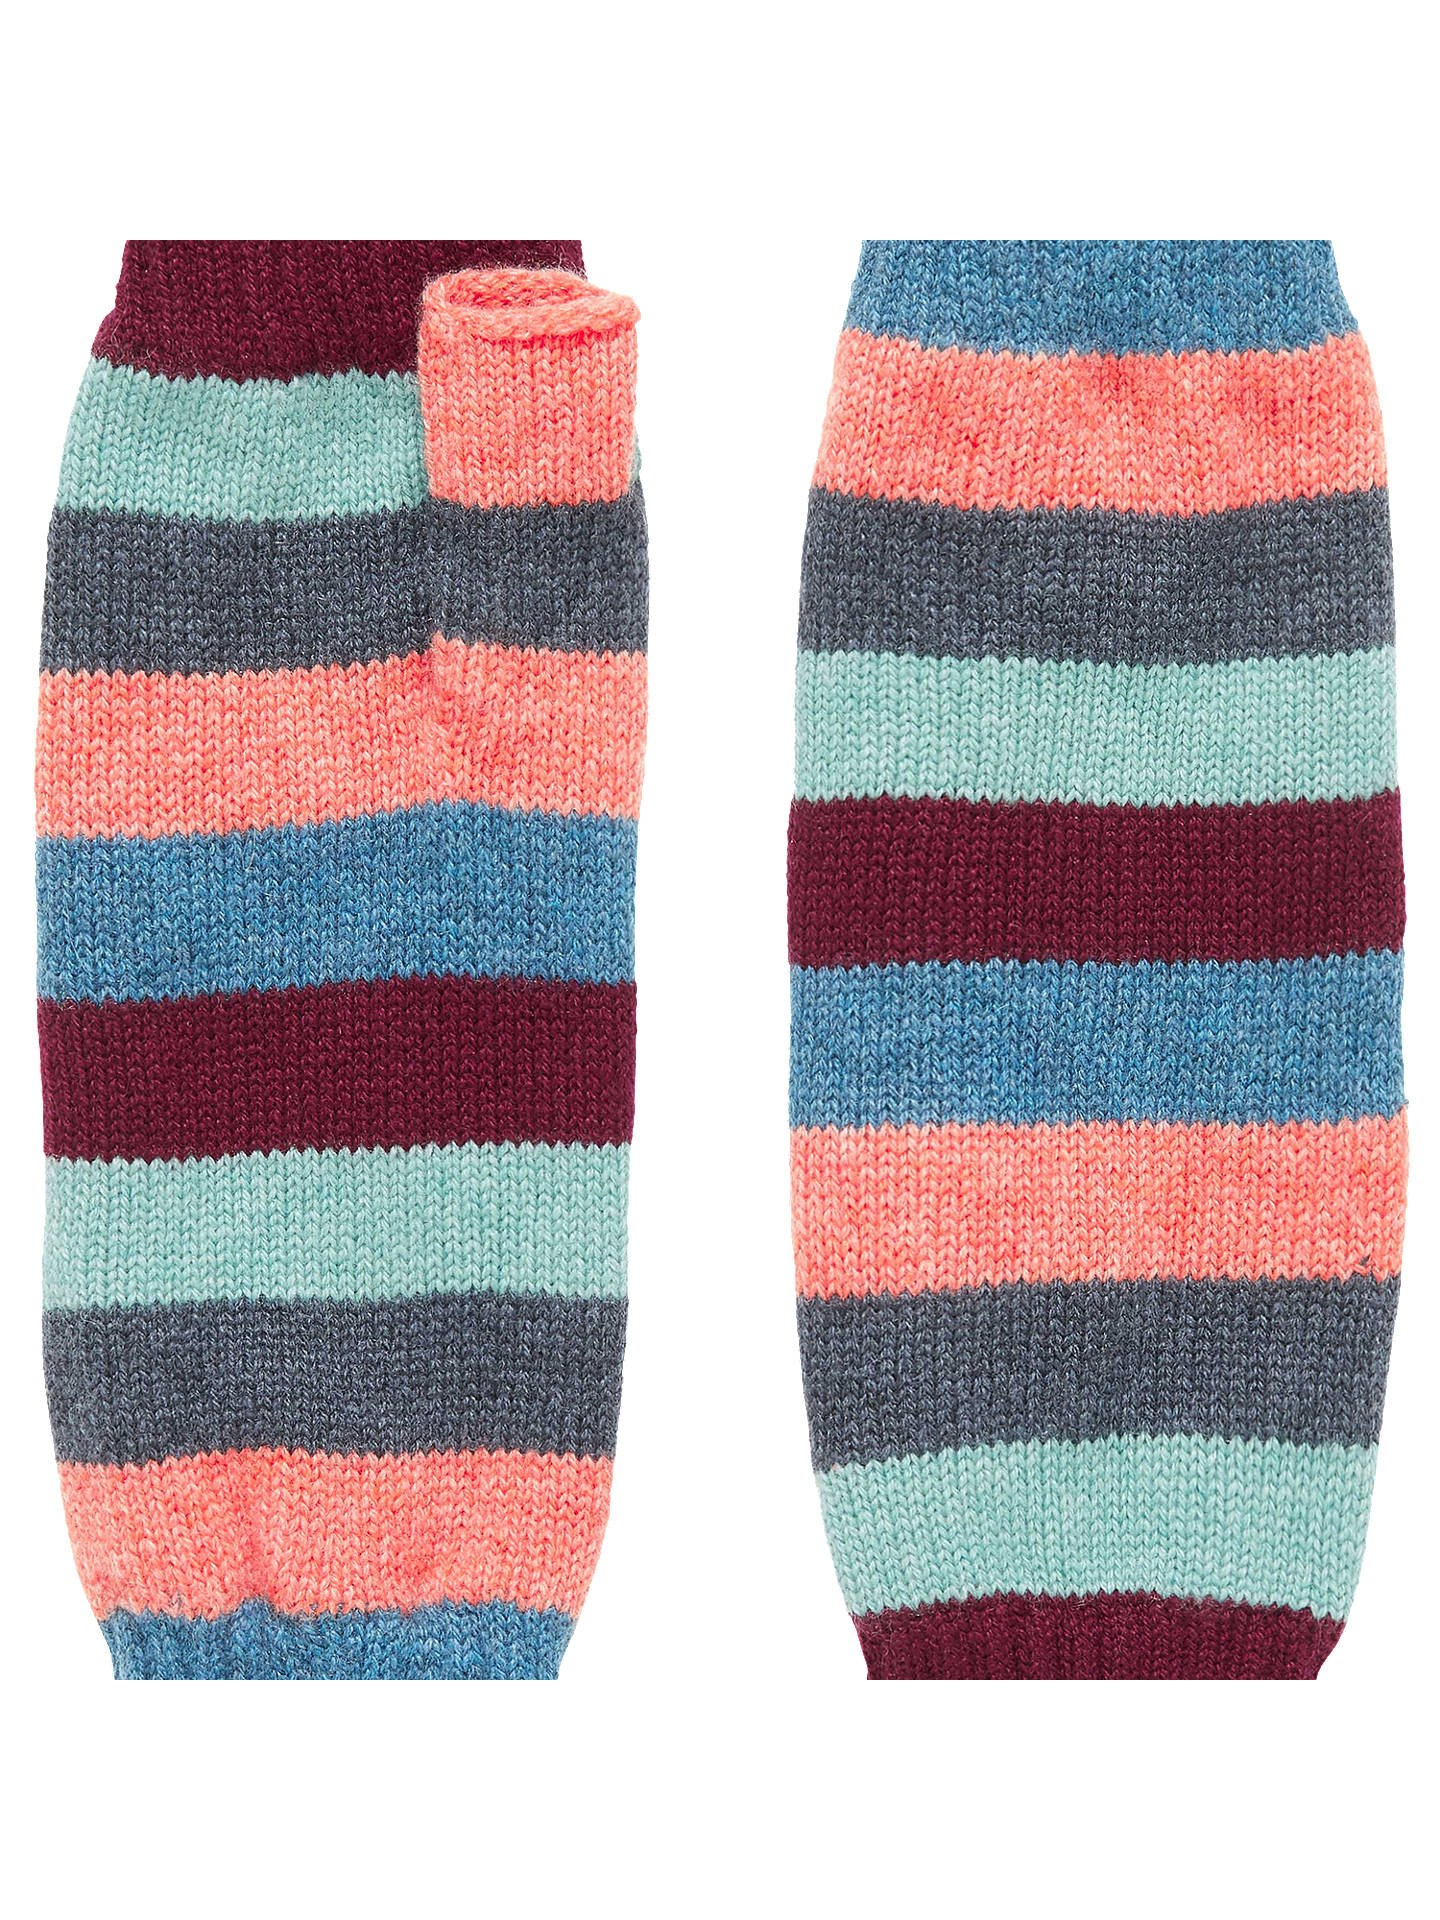 BuyBrora Colour Block Cashmere Wristwarmers, Rainbow, One Size Online at johnlewis.com